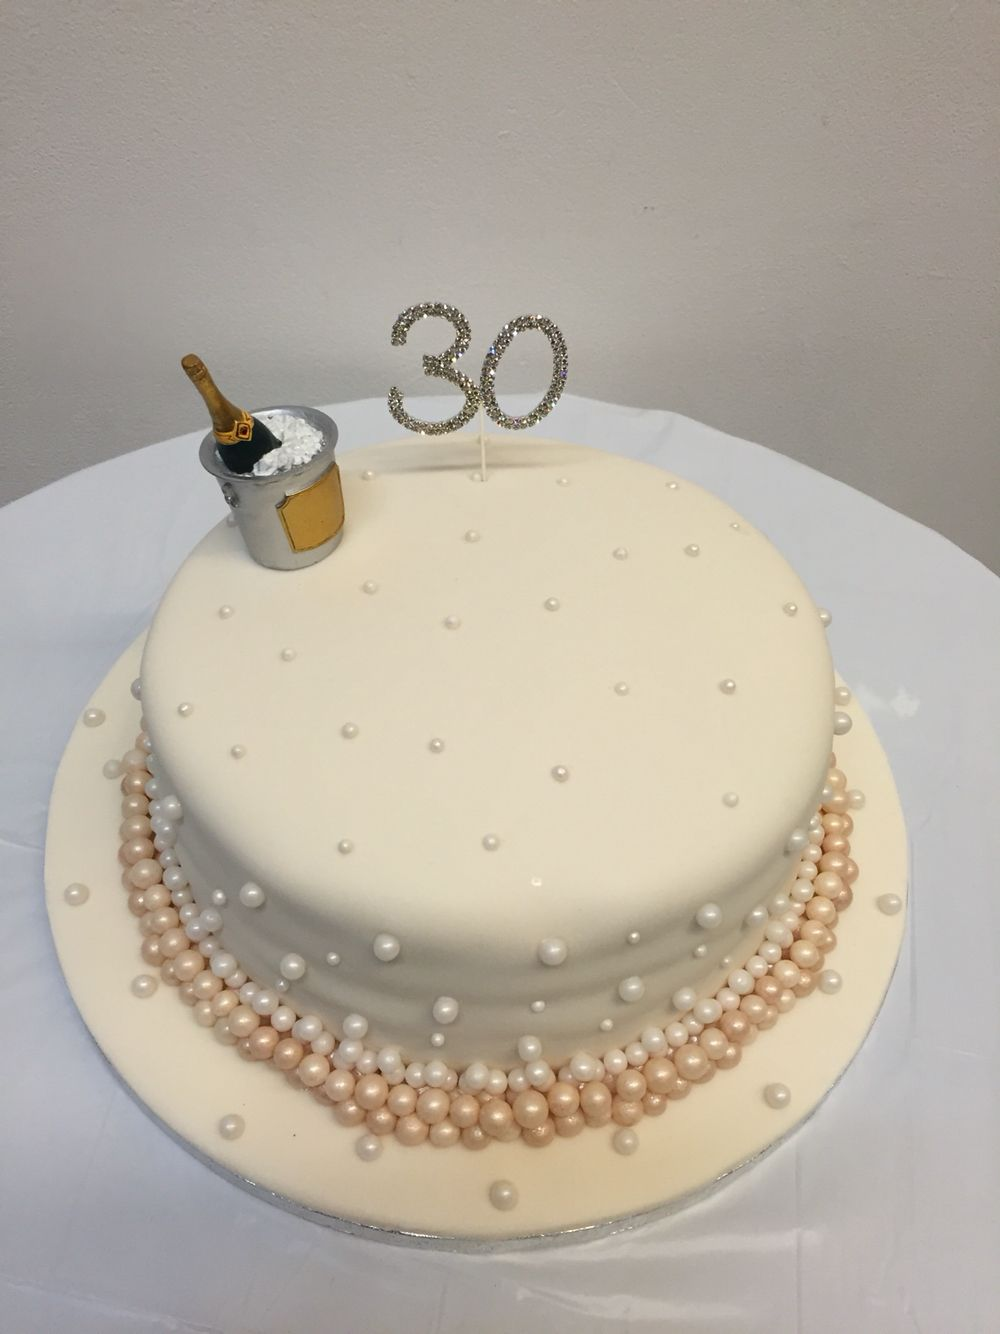 Funny anniversary cake quotes - 30th Pearl Wedding Anniversary Cake Lemon Cake With Lemon Butter Icing